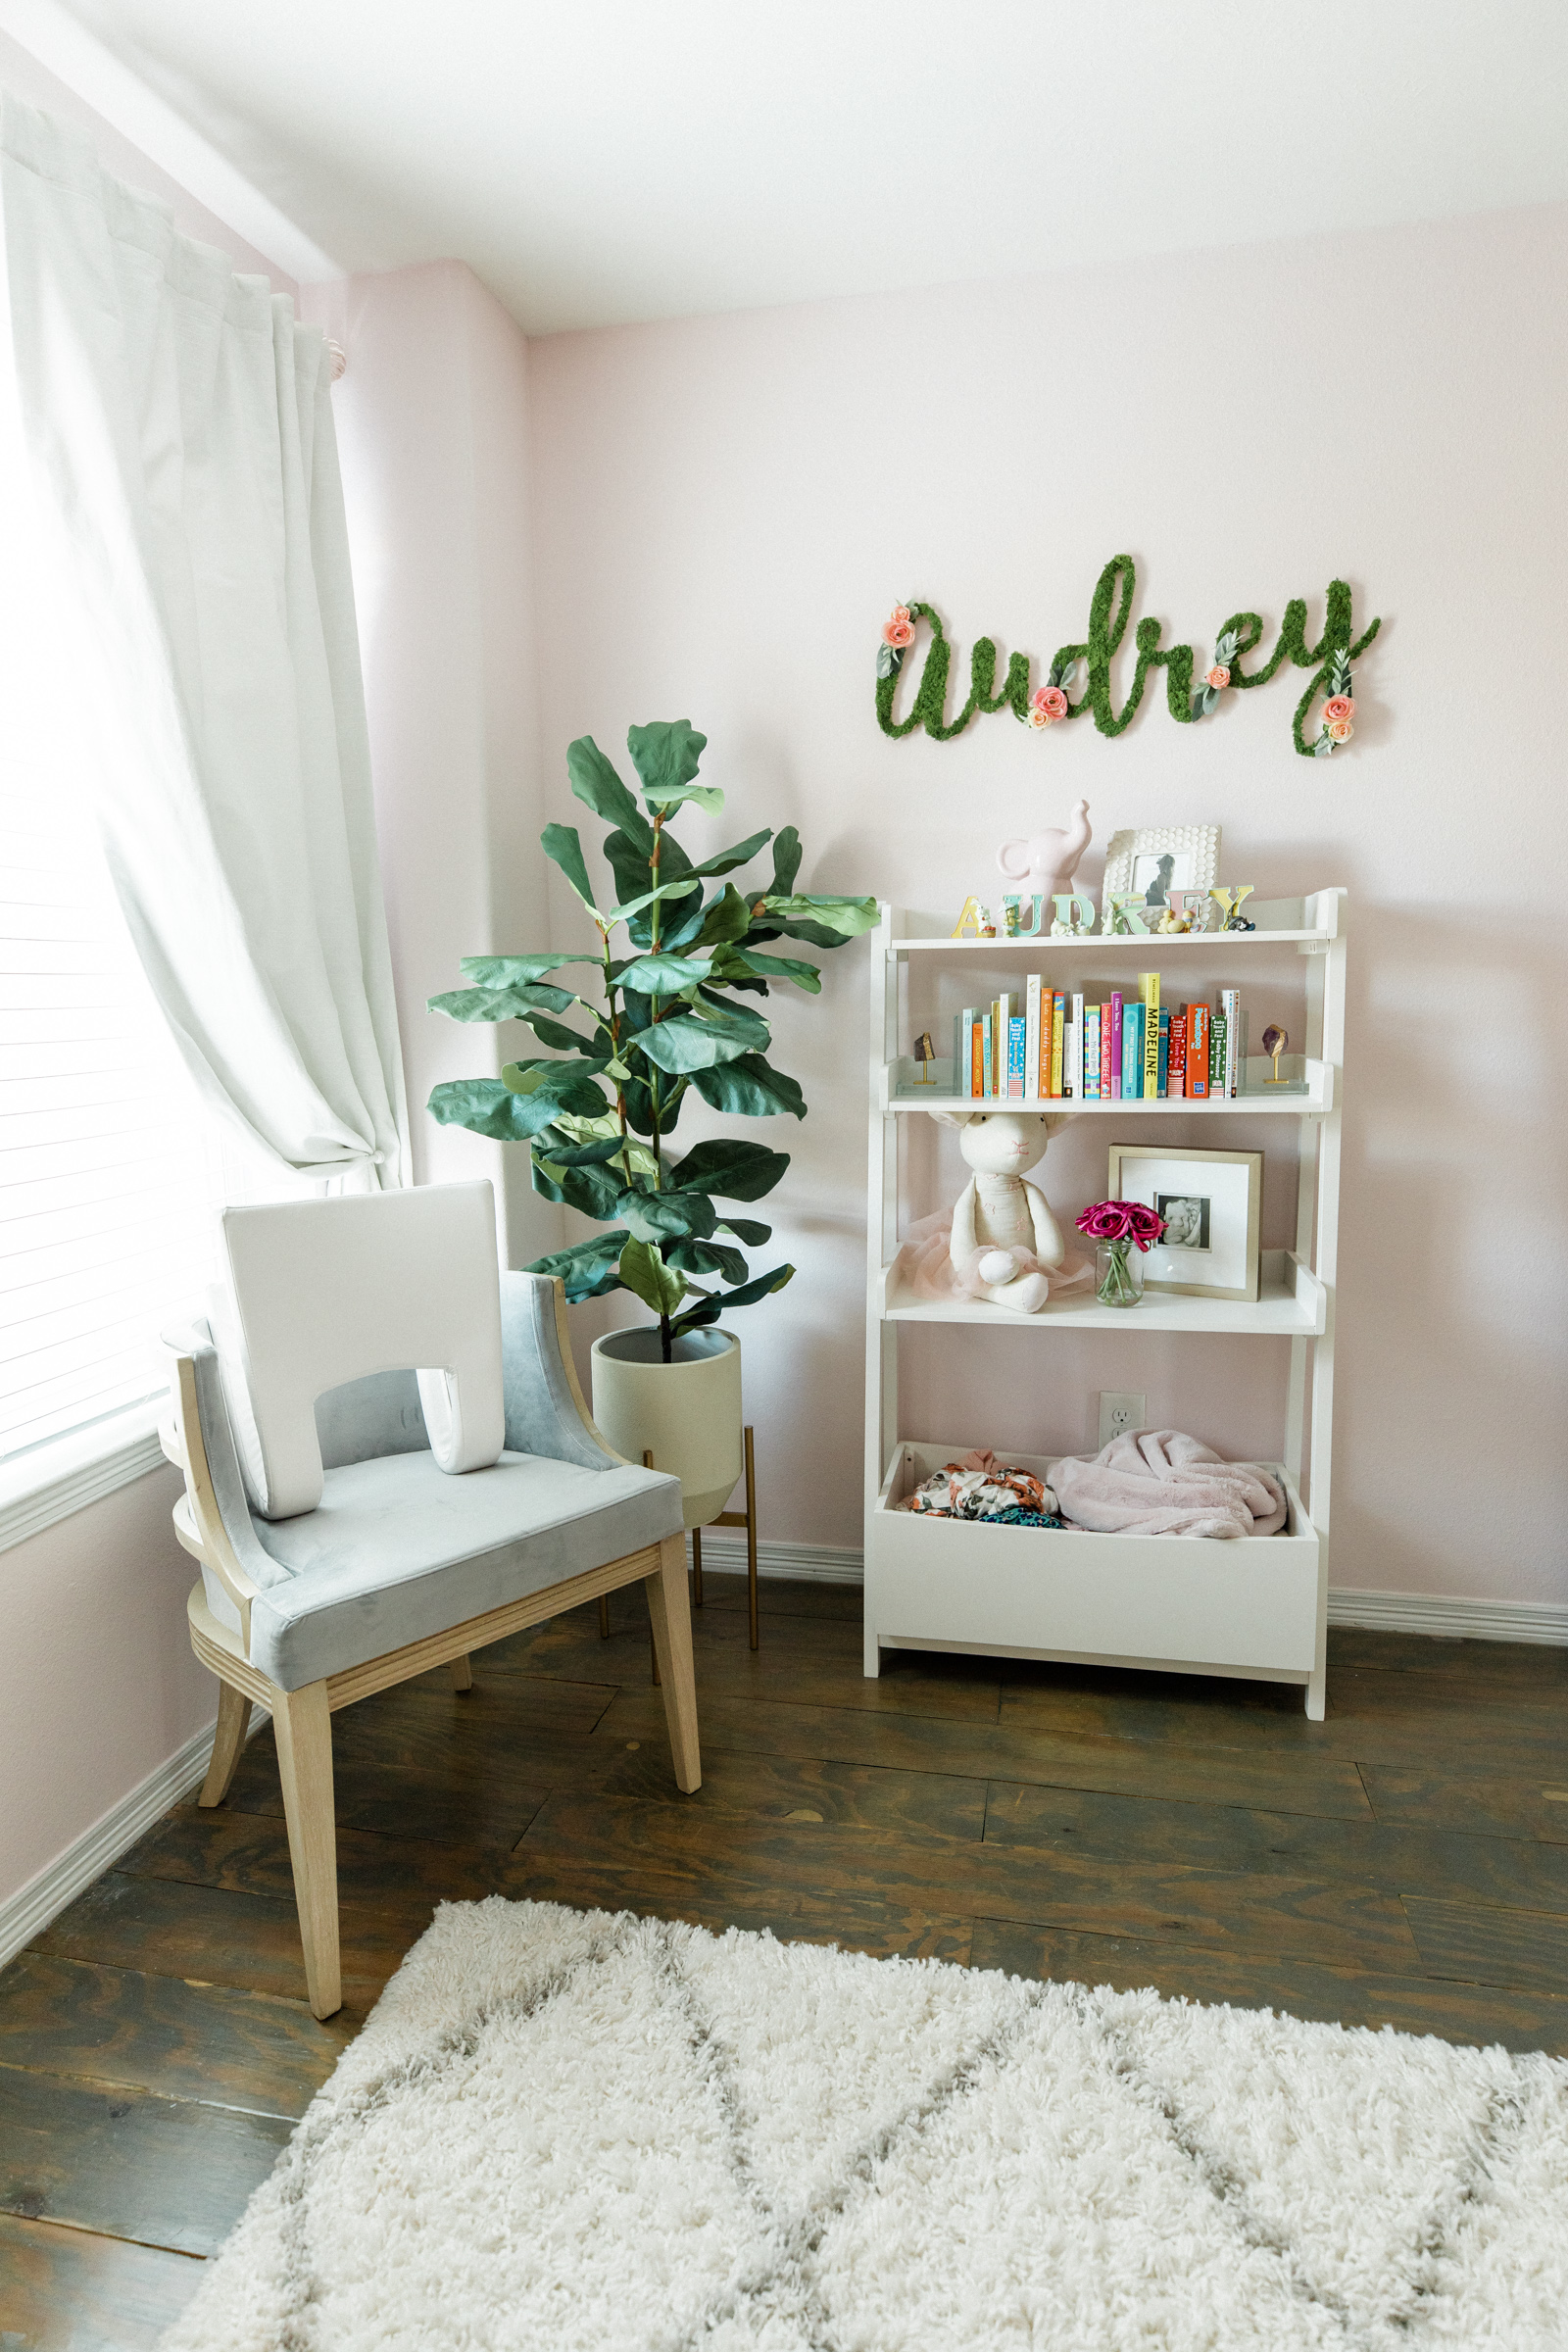 Houston lifestyle blogger Elly Brown shares the baby girl Nursery decor and Pottery Barn baby furniture